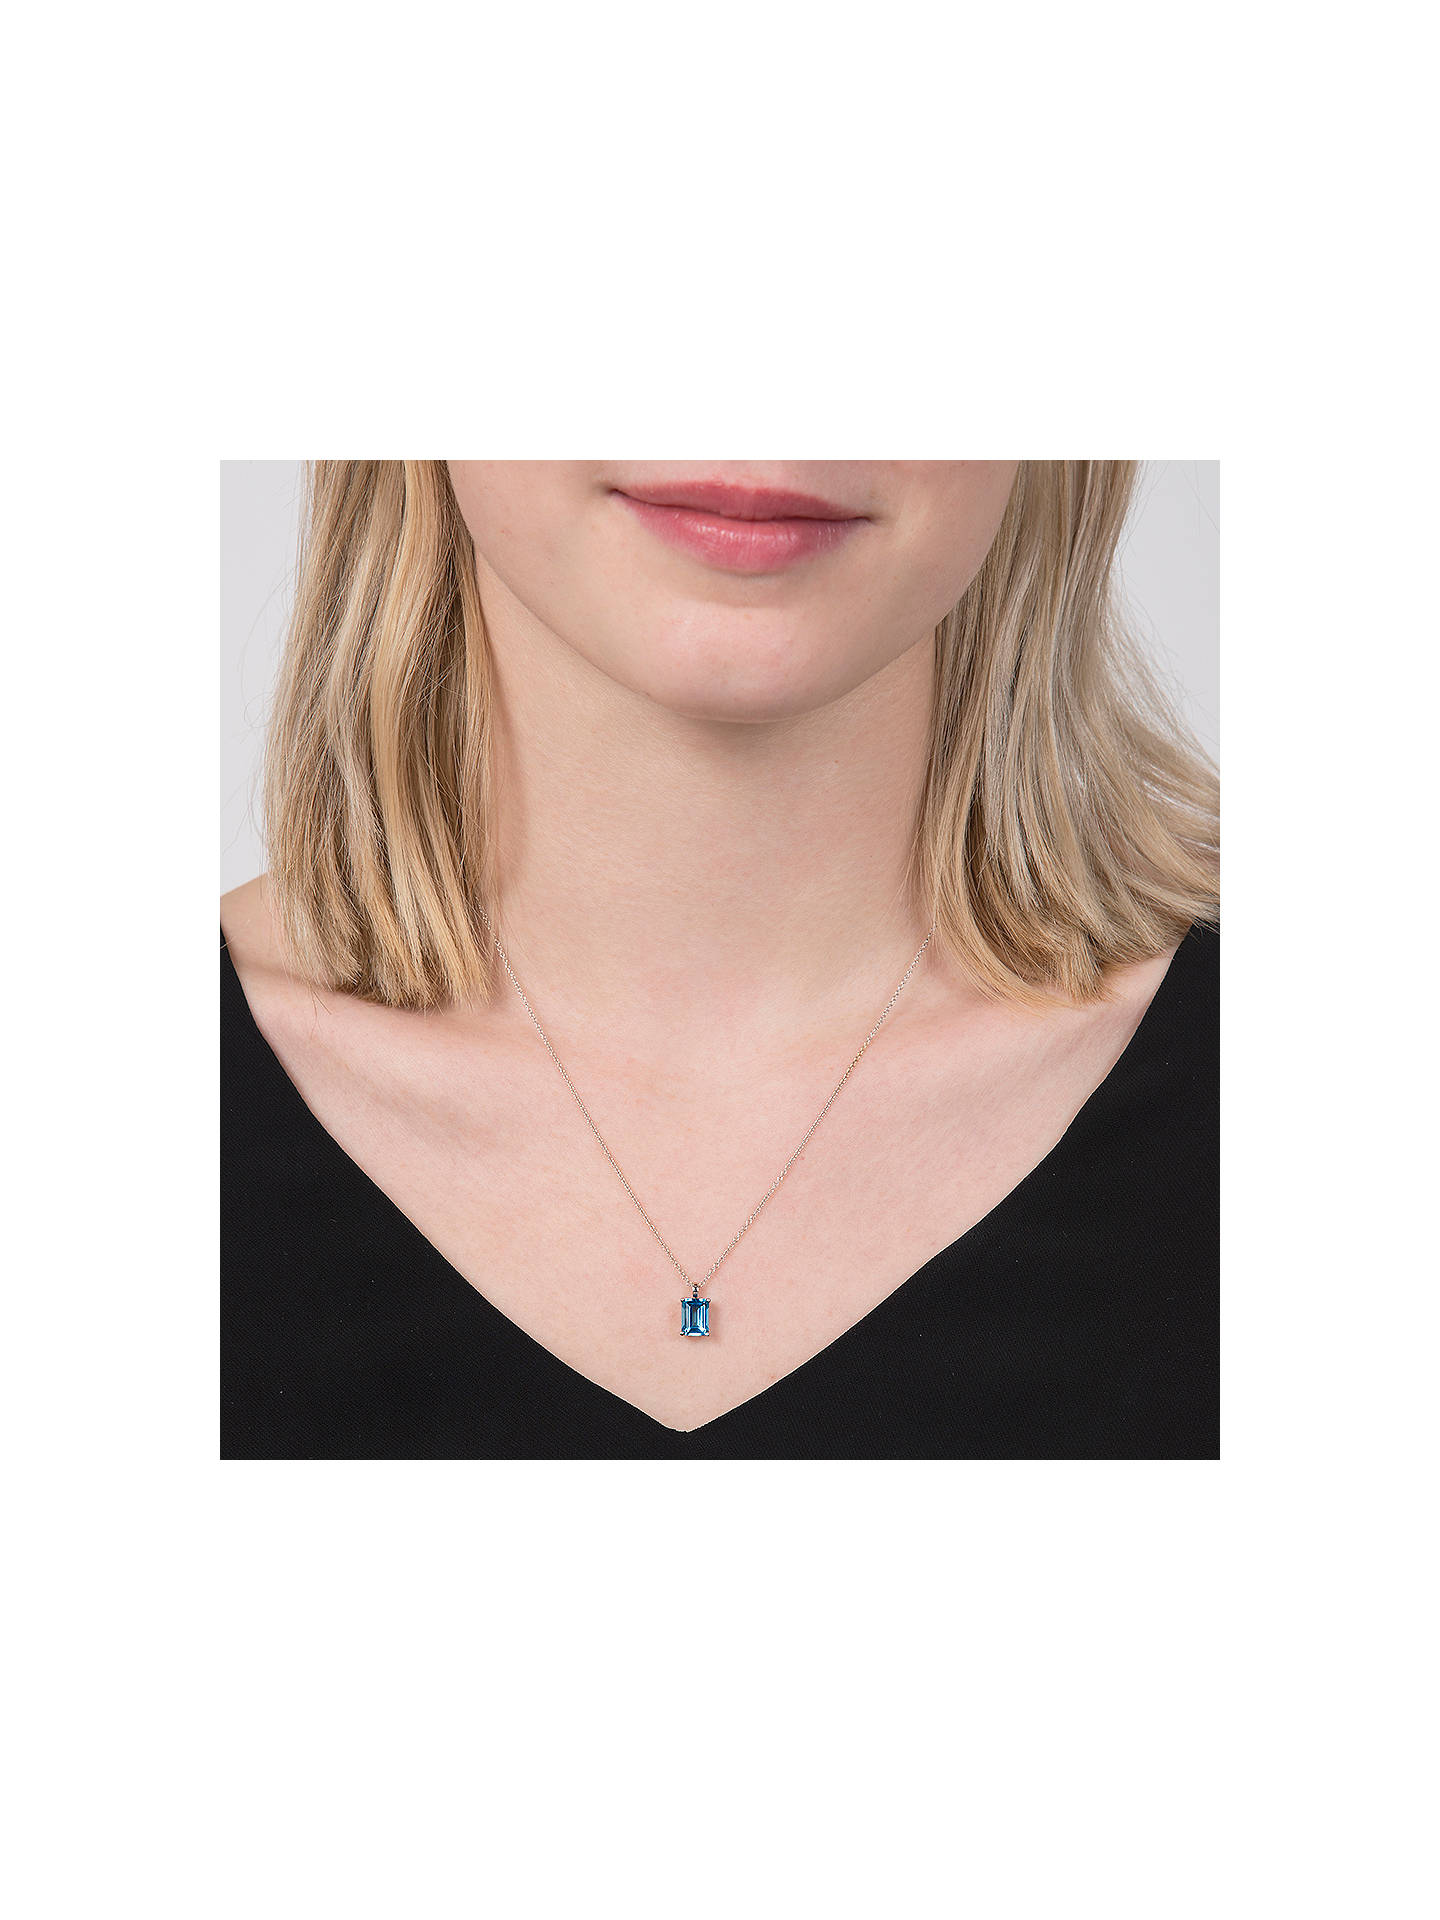 BuyEWA 9ct White Gold Baguette Pendant Necklace, Blue Topaz Online at johnlewis.com